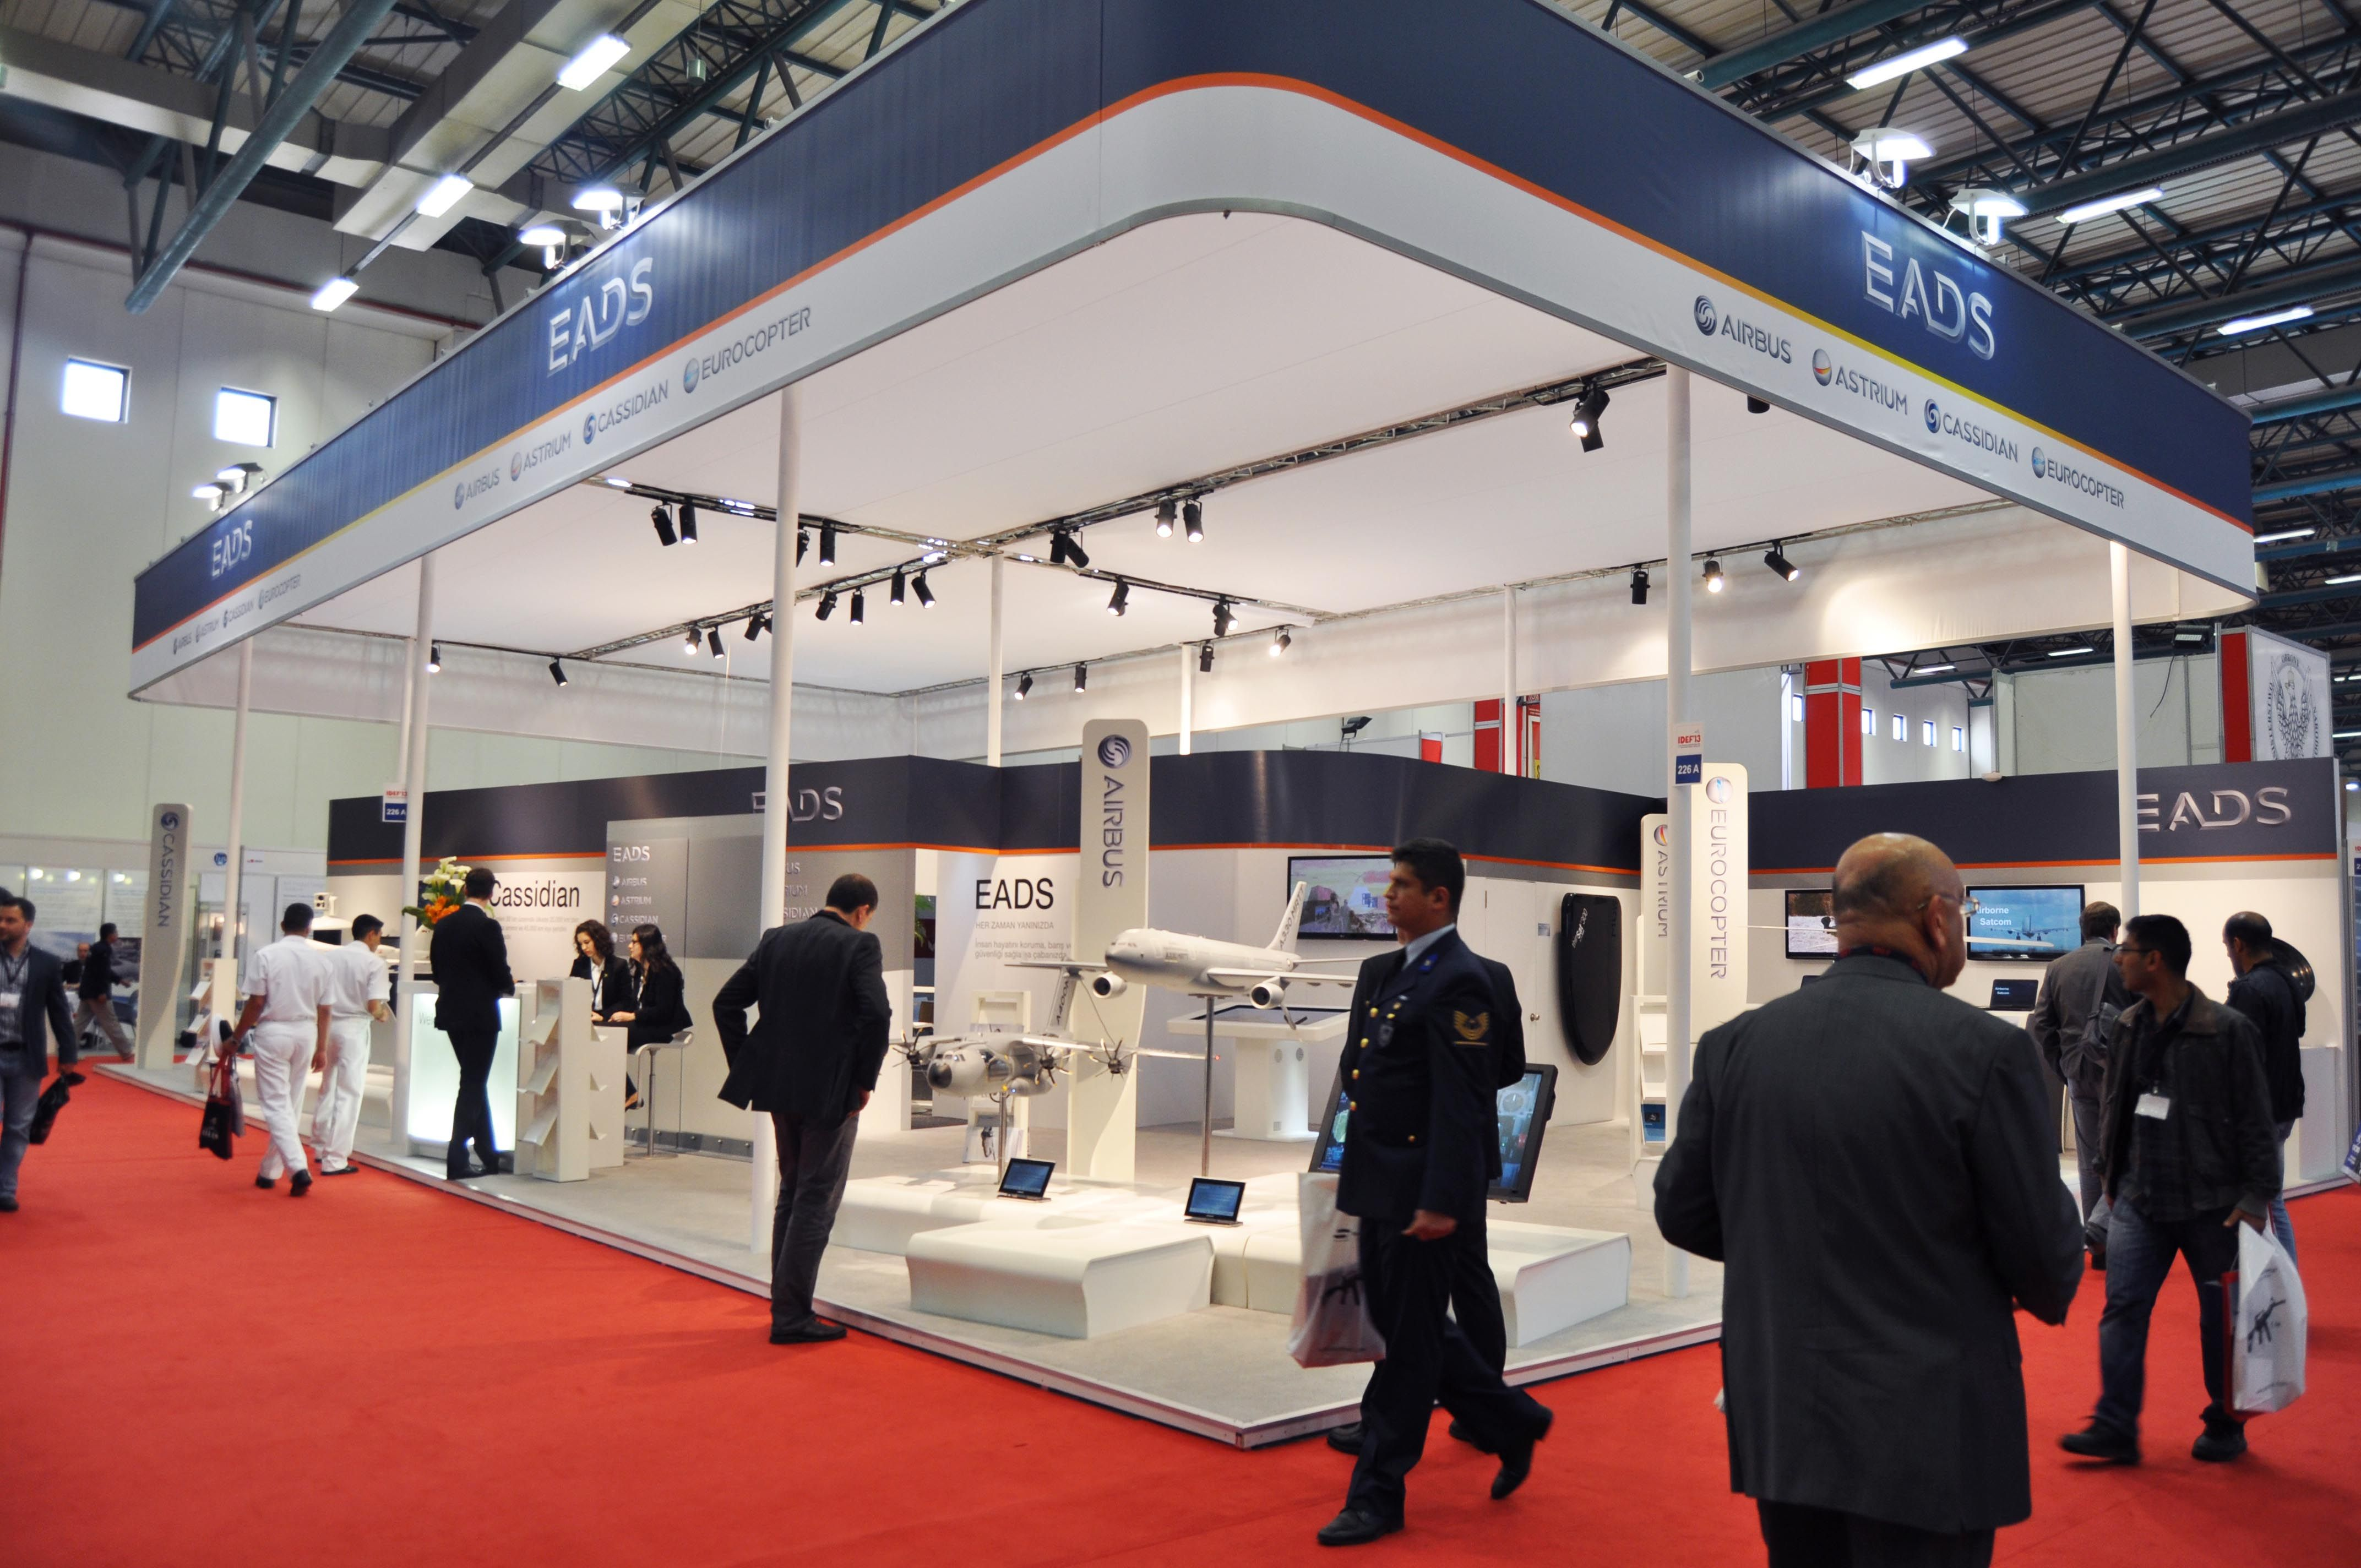 Expo Exhibition Stands In : Point expo exhibition congress and events services ltd